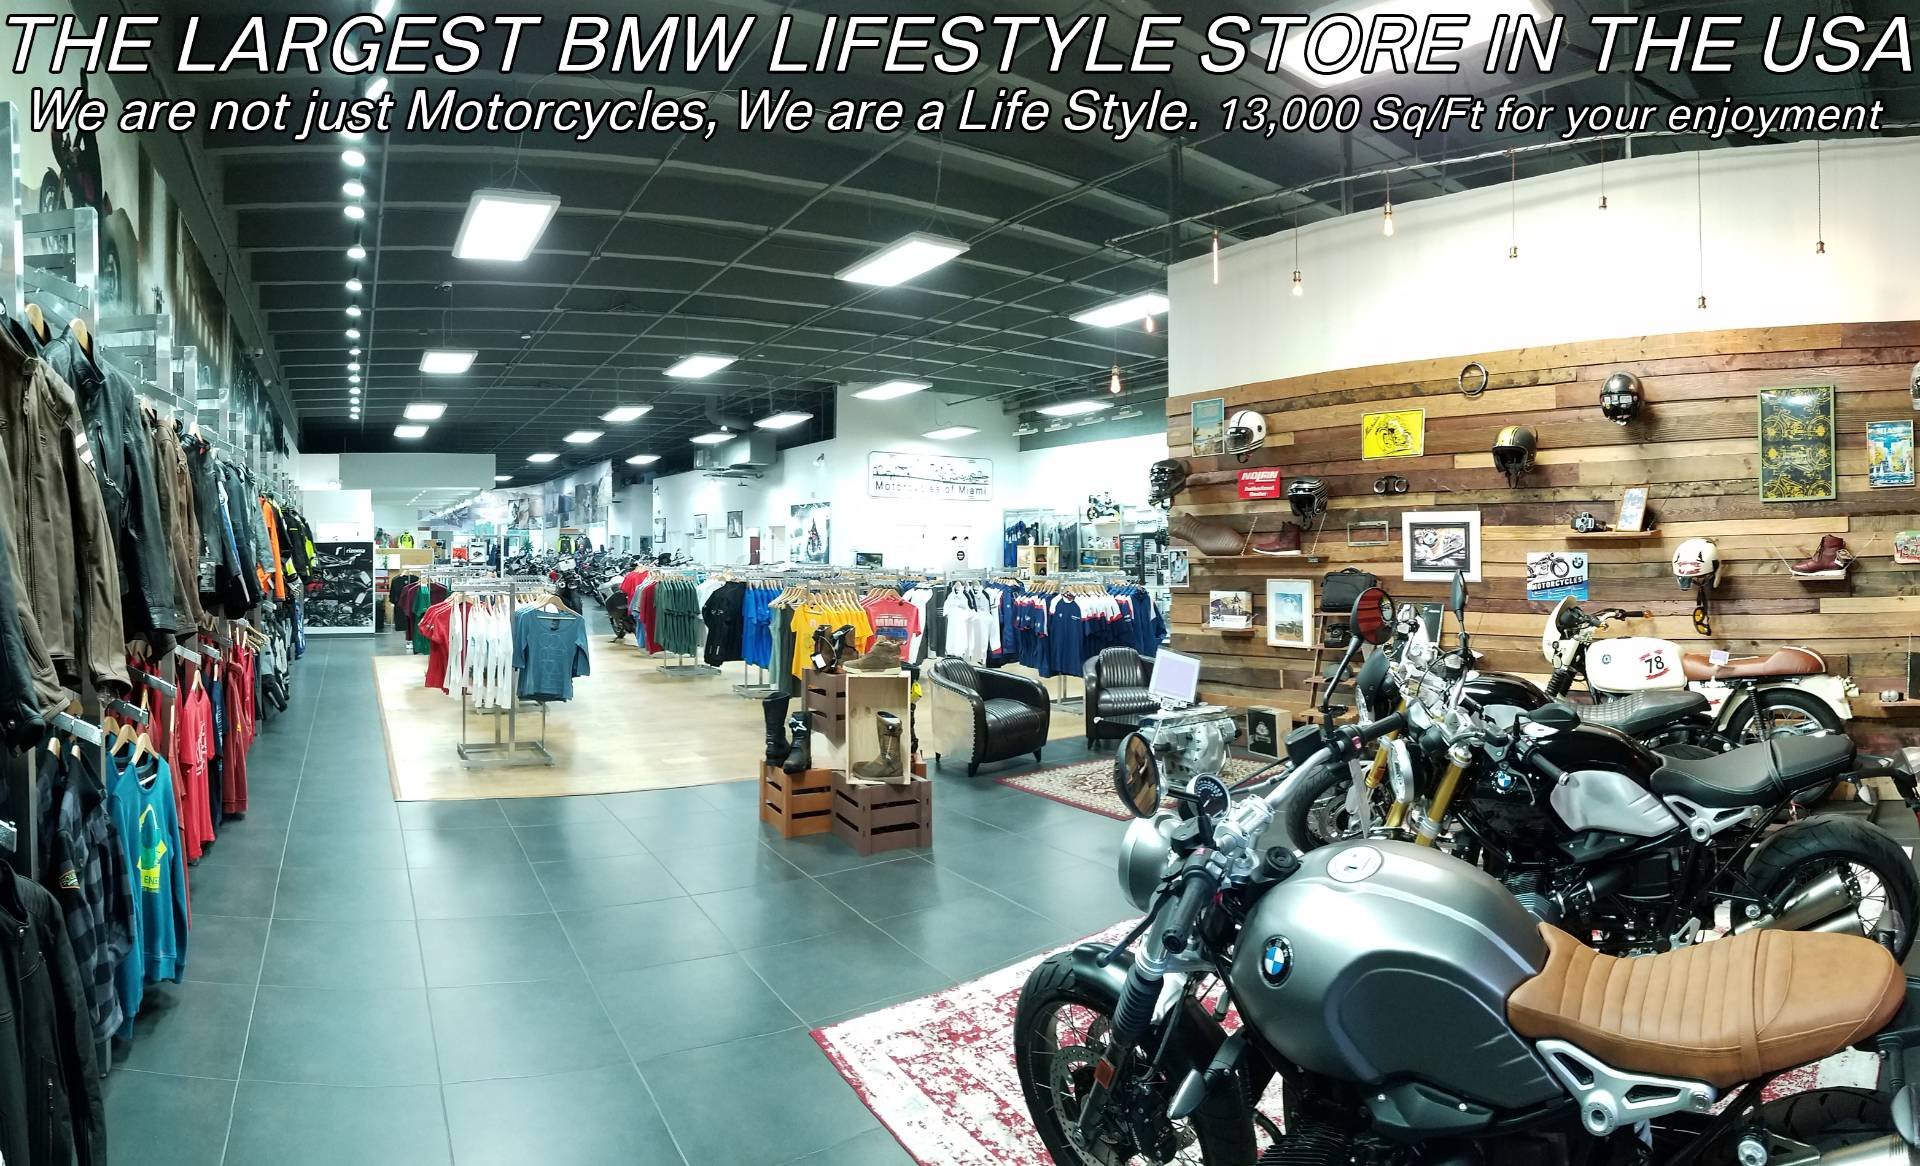 New 2019 BMW R nine T for sale, BMW R nineT for sale, BMW Motorcycle RnineT, BMW Motorcycles of Miami, Motorcycles of Miami, Motorcycles Miami - Photo 22